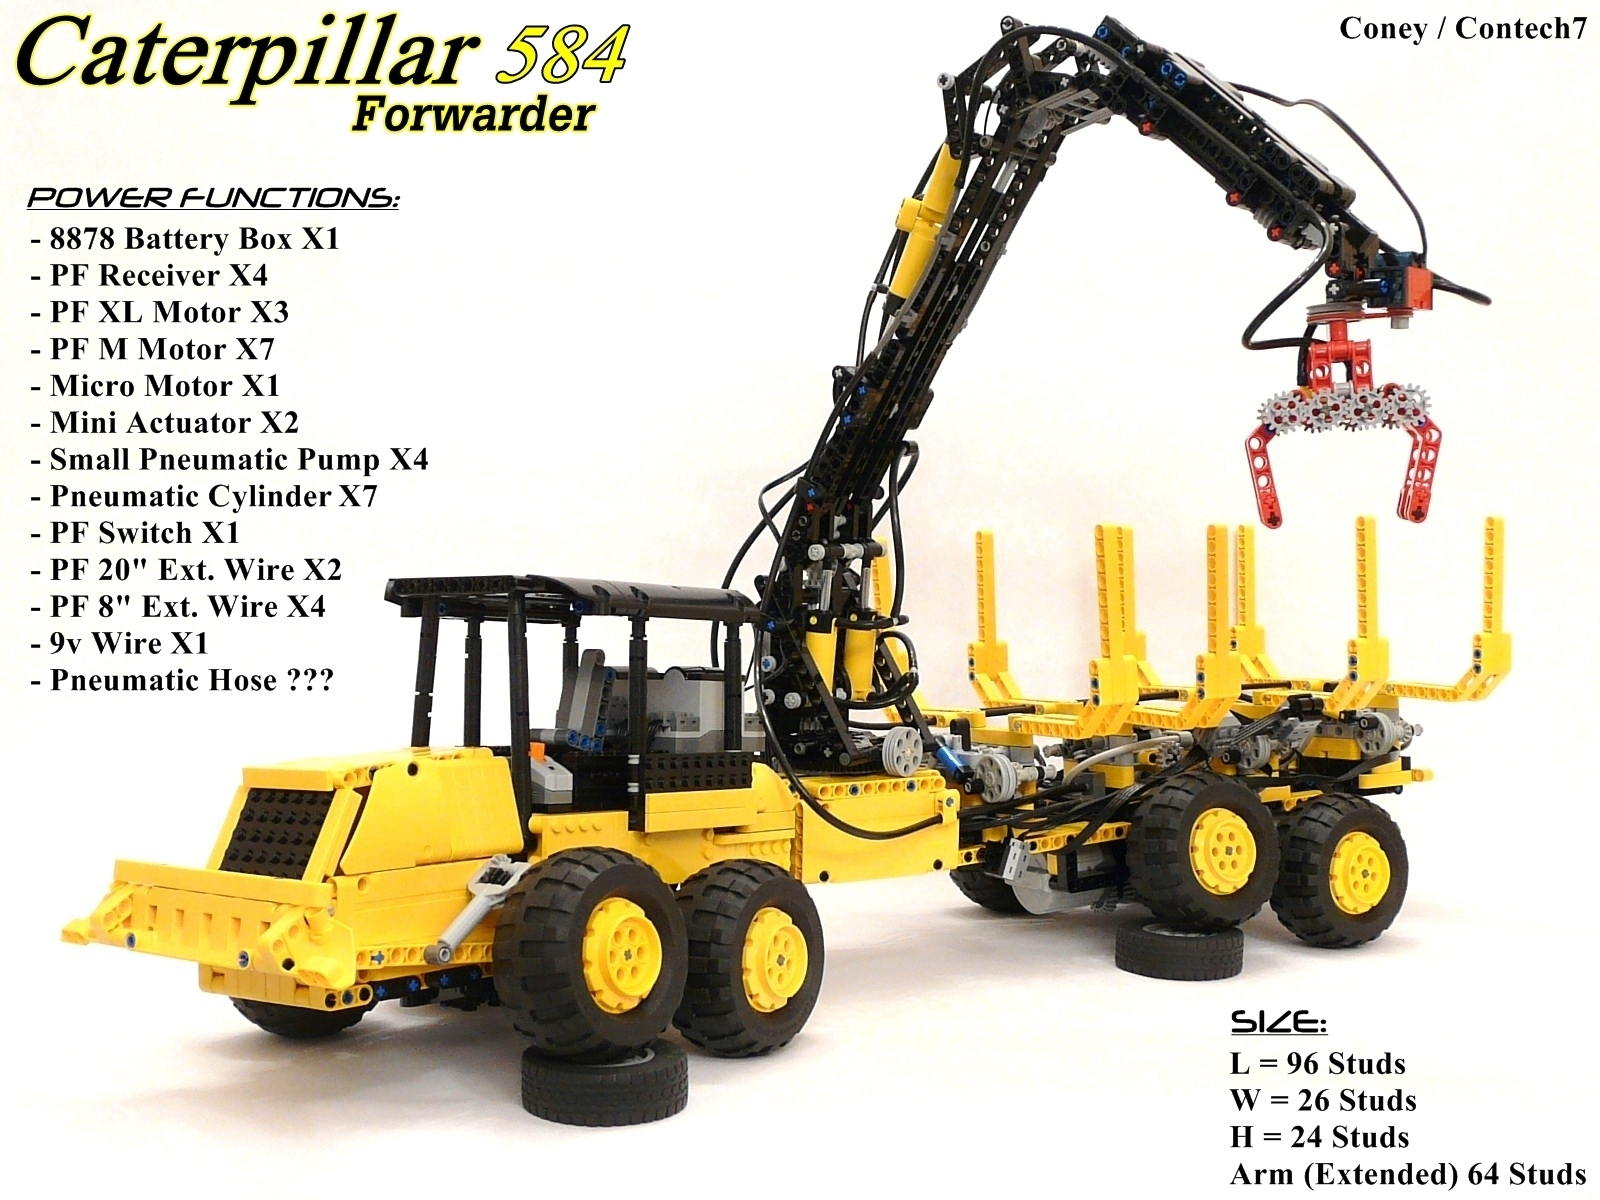 Week TechVideo, 2011 #05 - Caterpillar 584 Forwarder